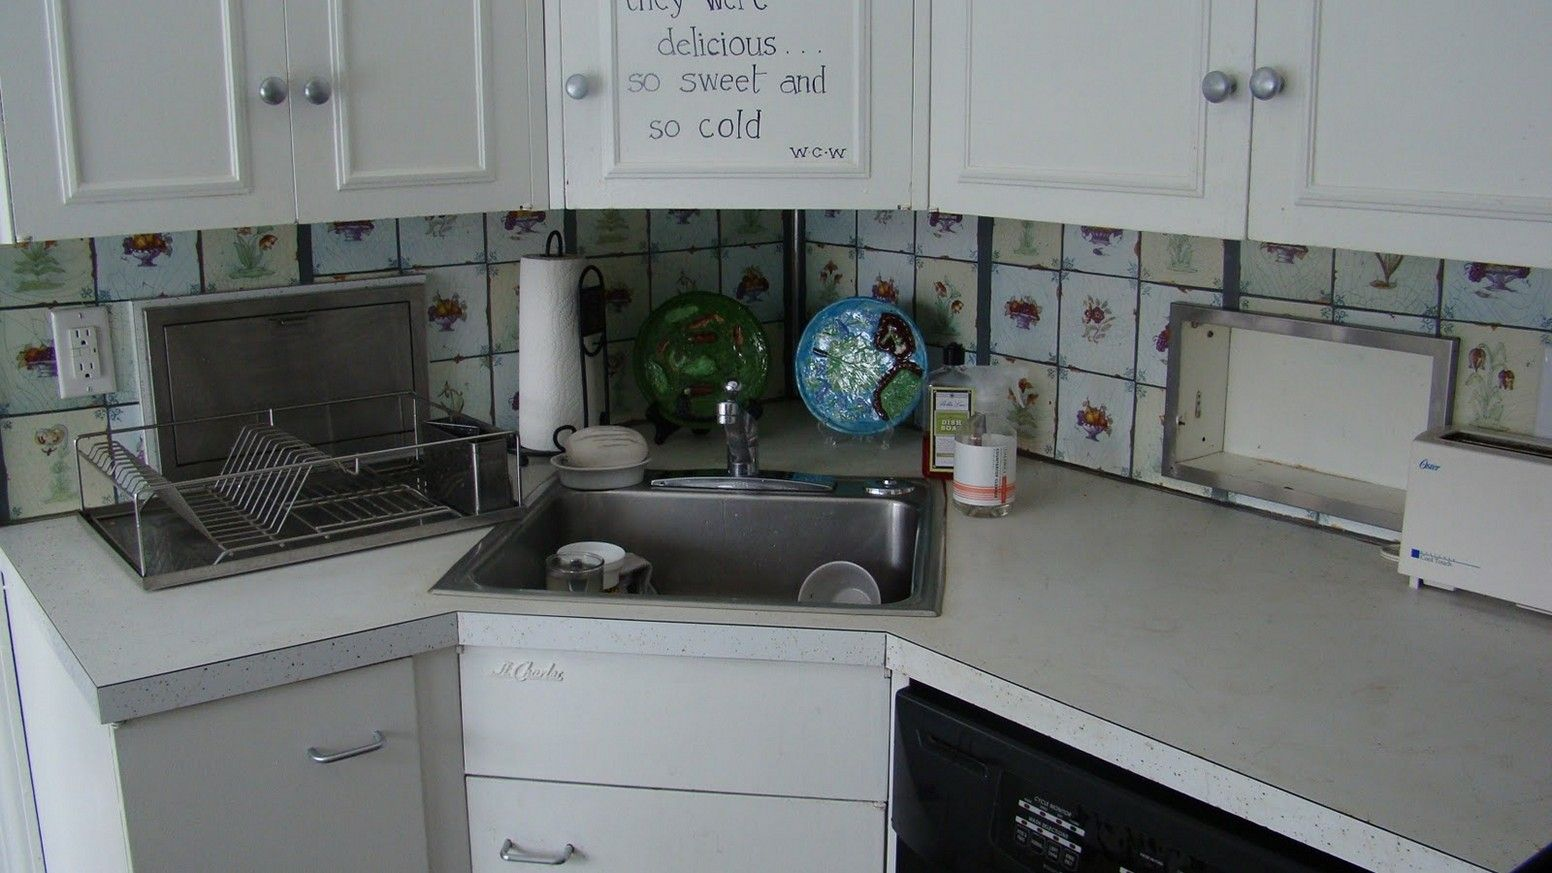 kitchen  marvelous corner apron kitchen sink also angled corner kitchen sink from features of a corner kitchen sink best and cool corner kitchen sink for clean home   kitchens      rh   pinterest com